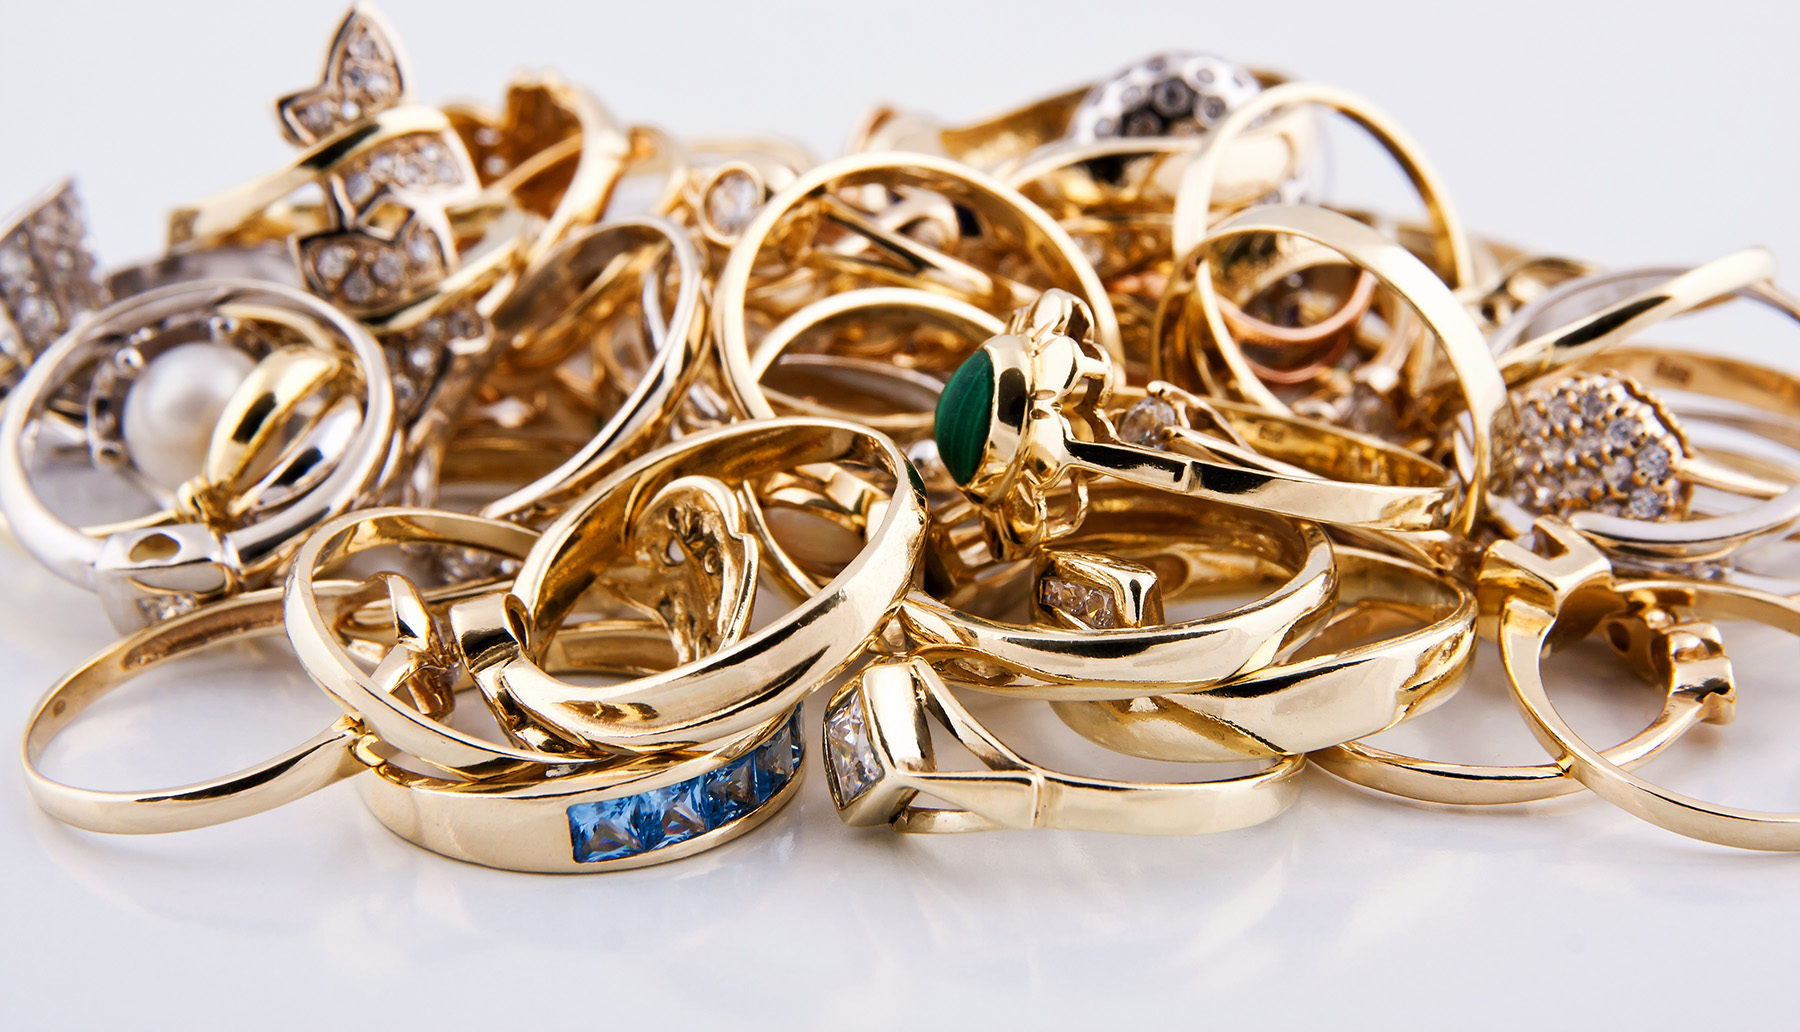 bigstock-Gold-Jewelry-801540111